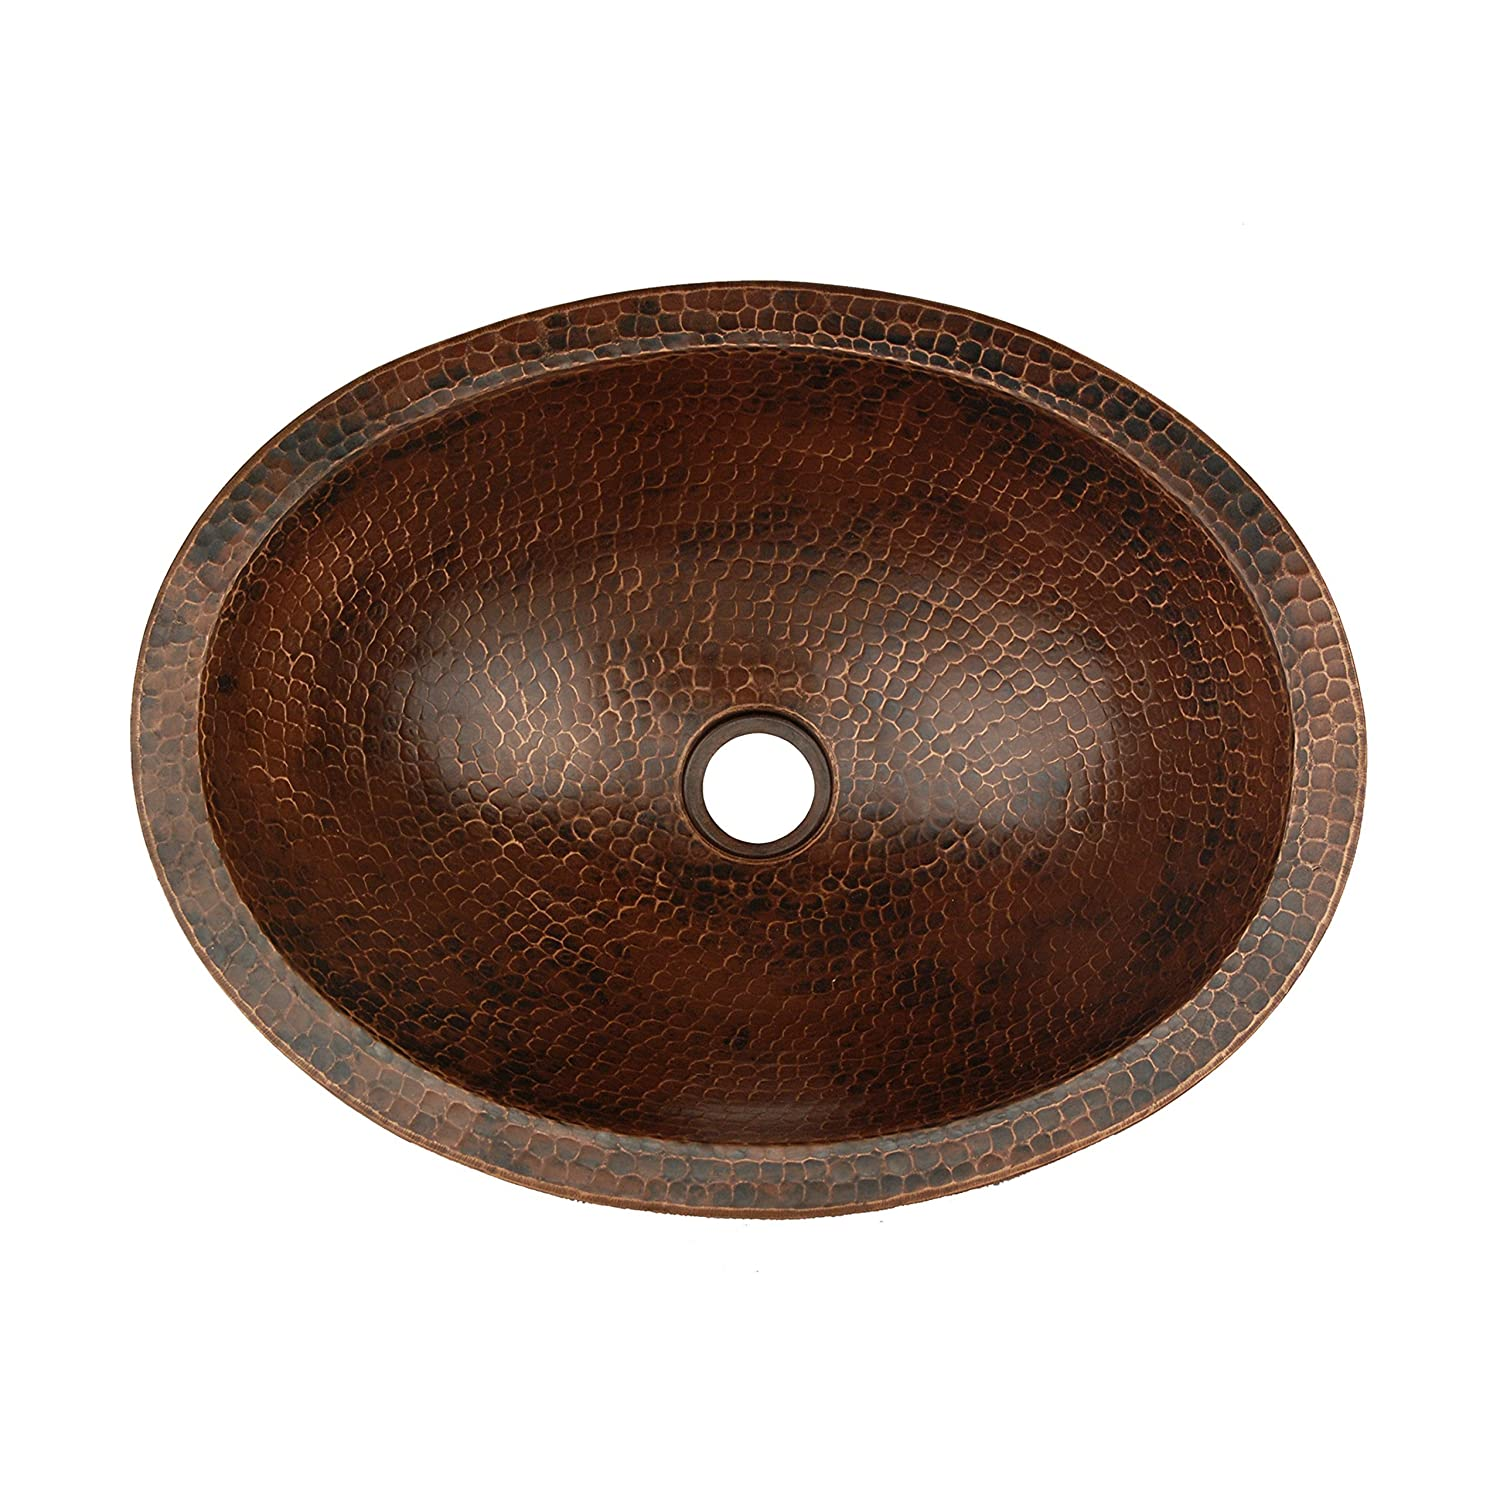 Premier Copper Products Vo17skdb Oval Skirted Vessel Hammered